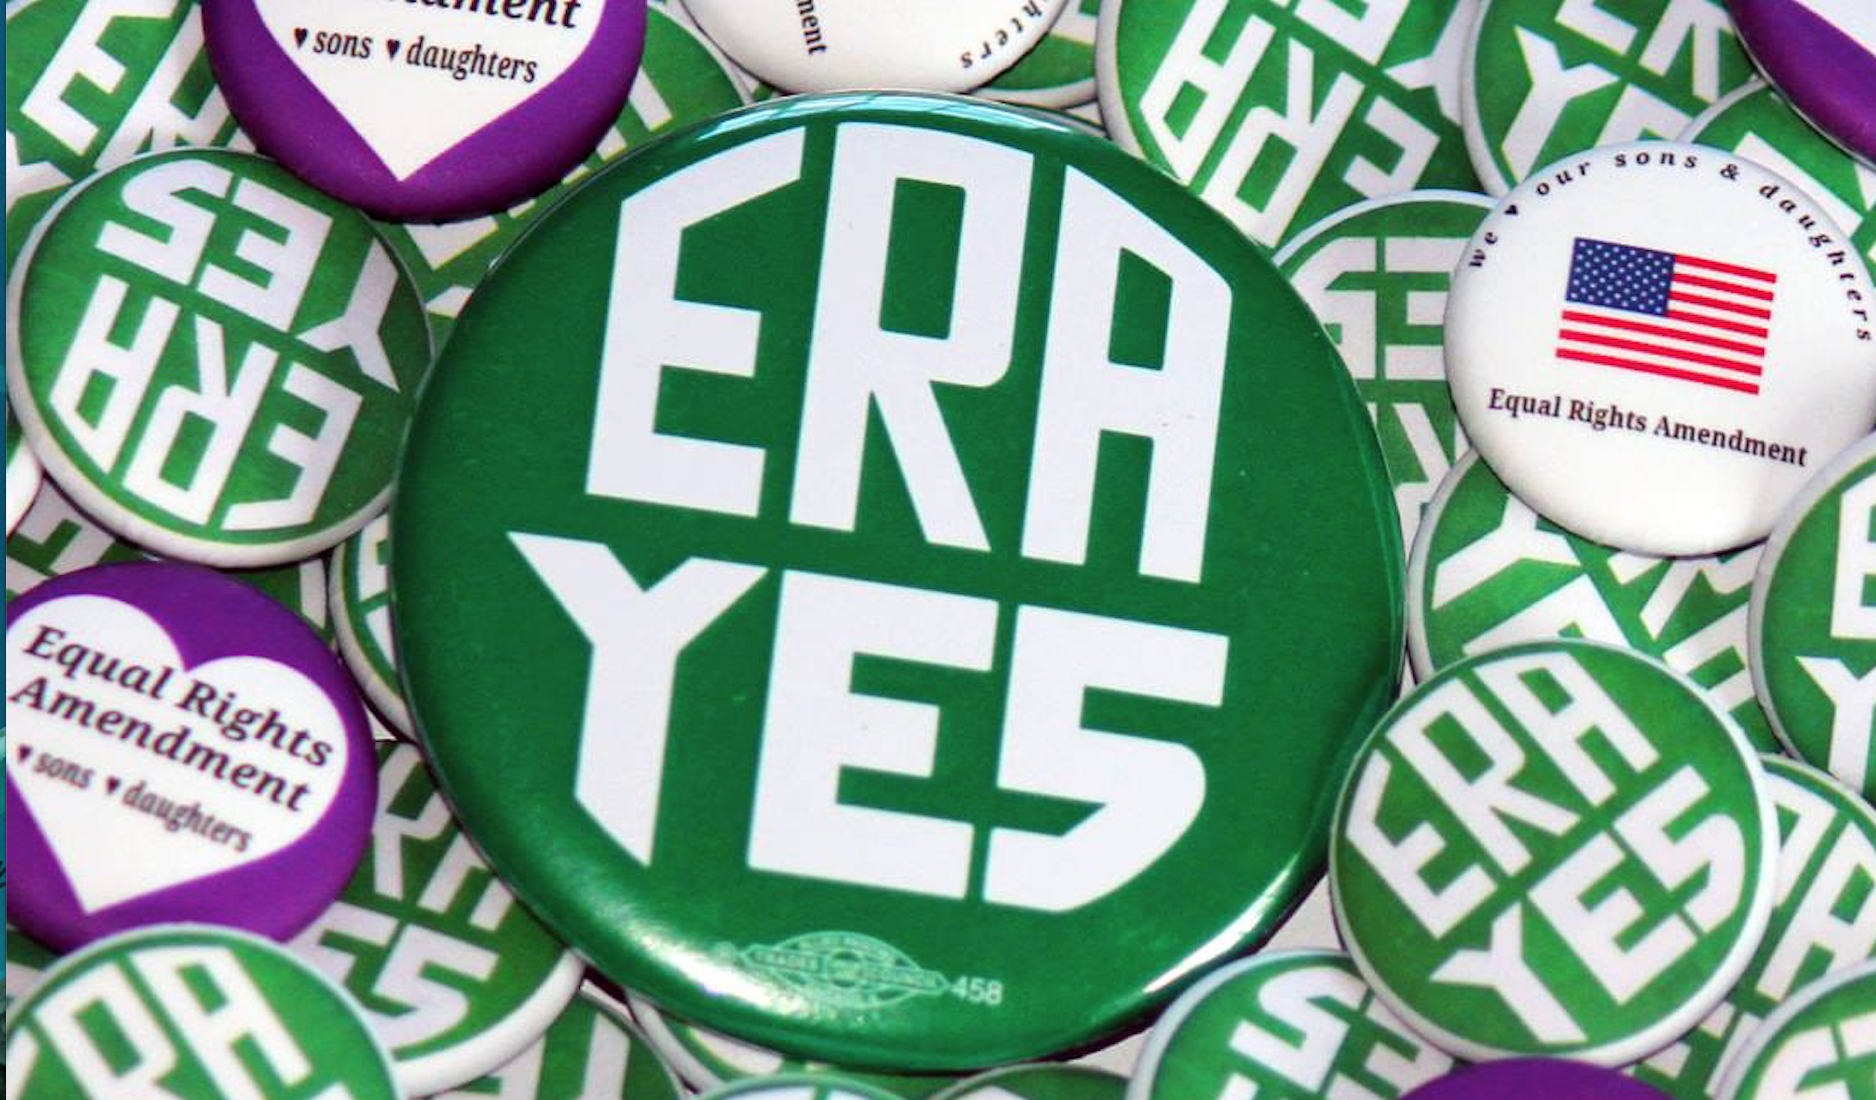 ERA Yes buttons